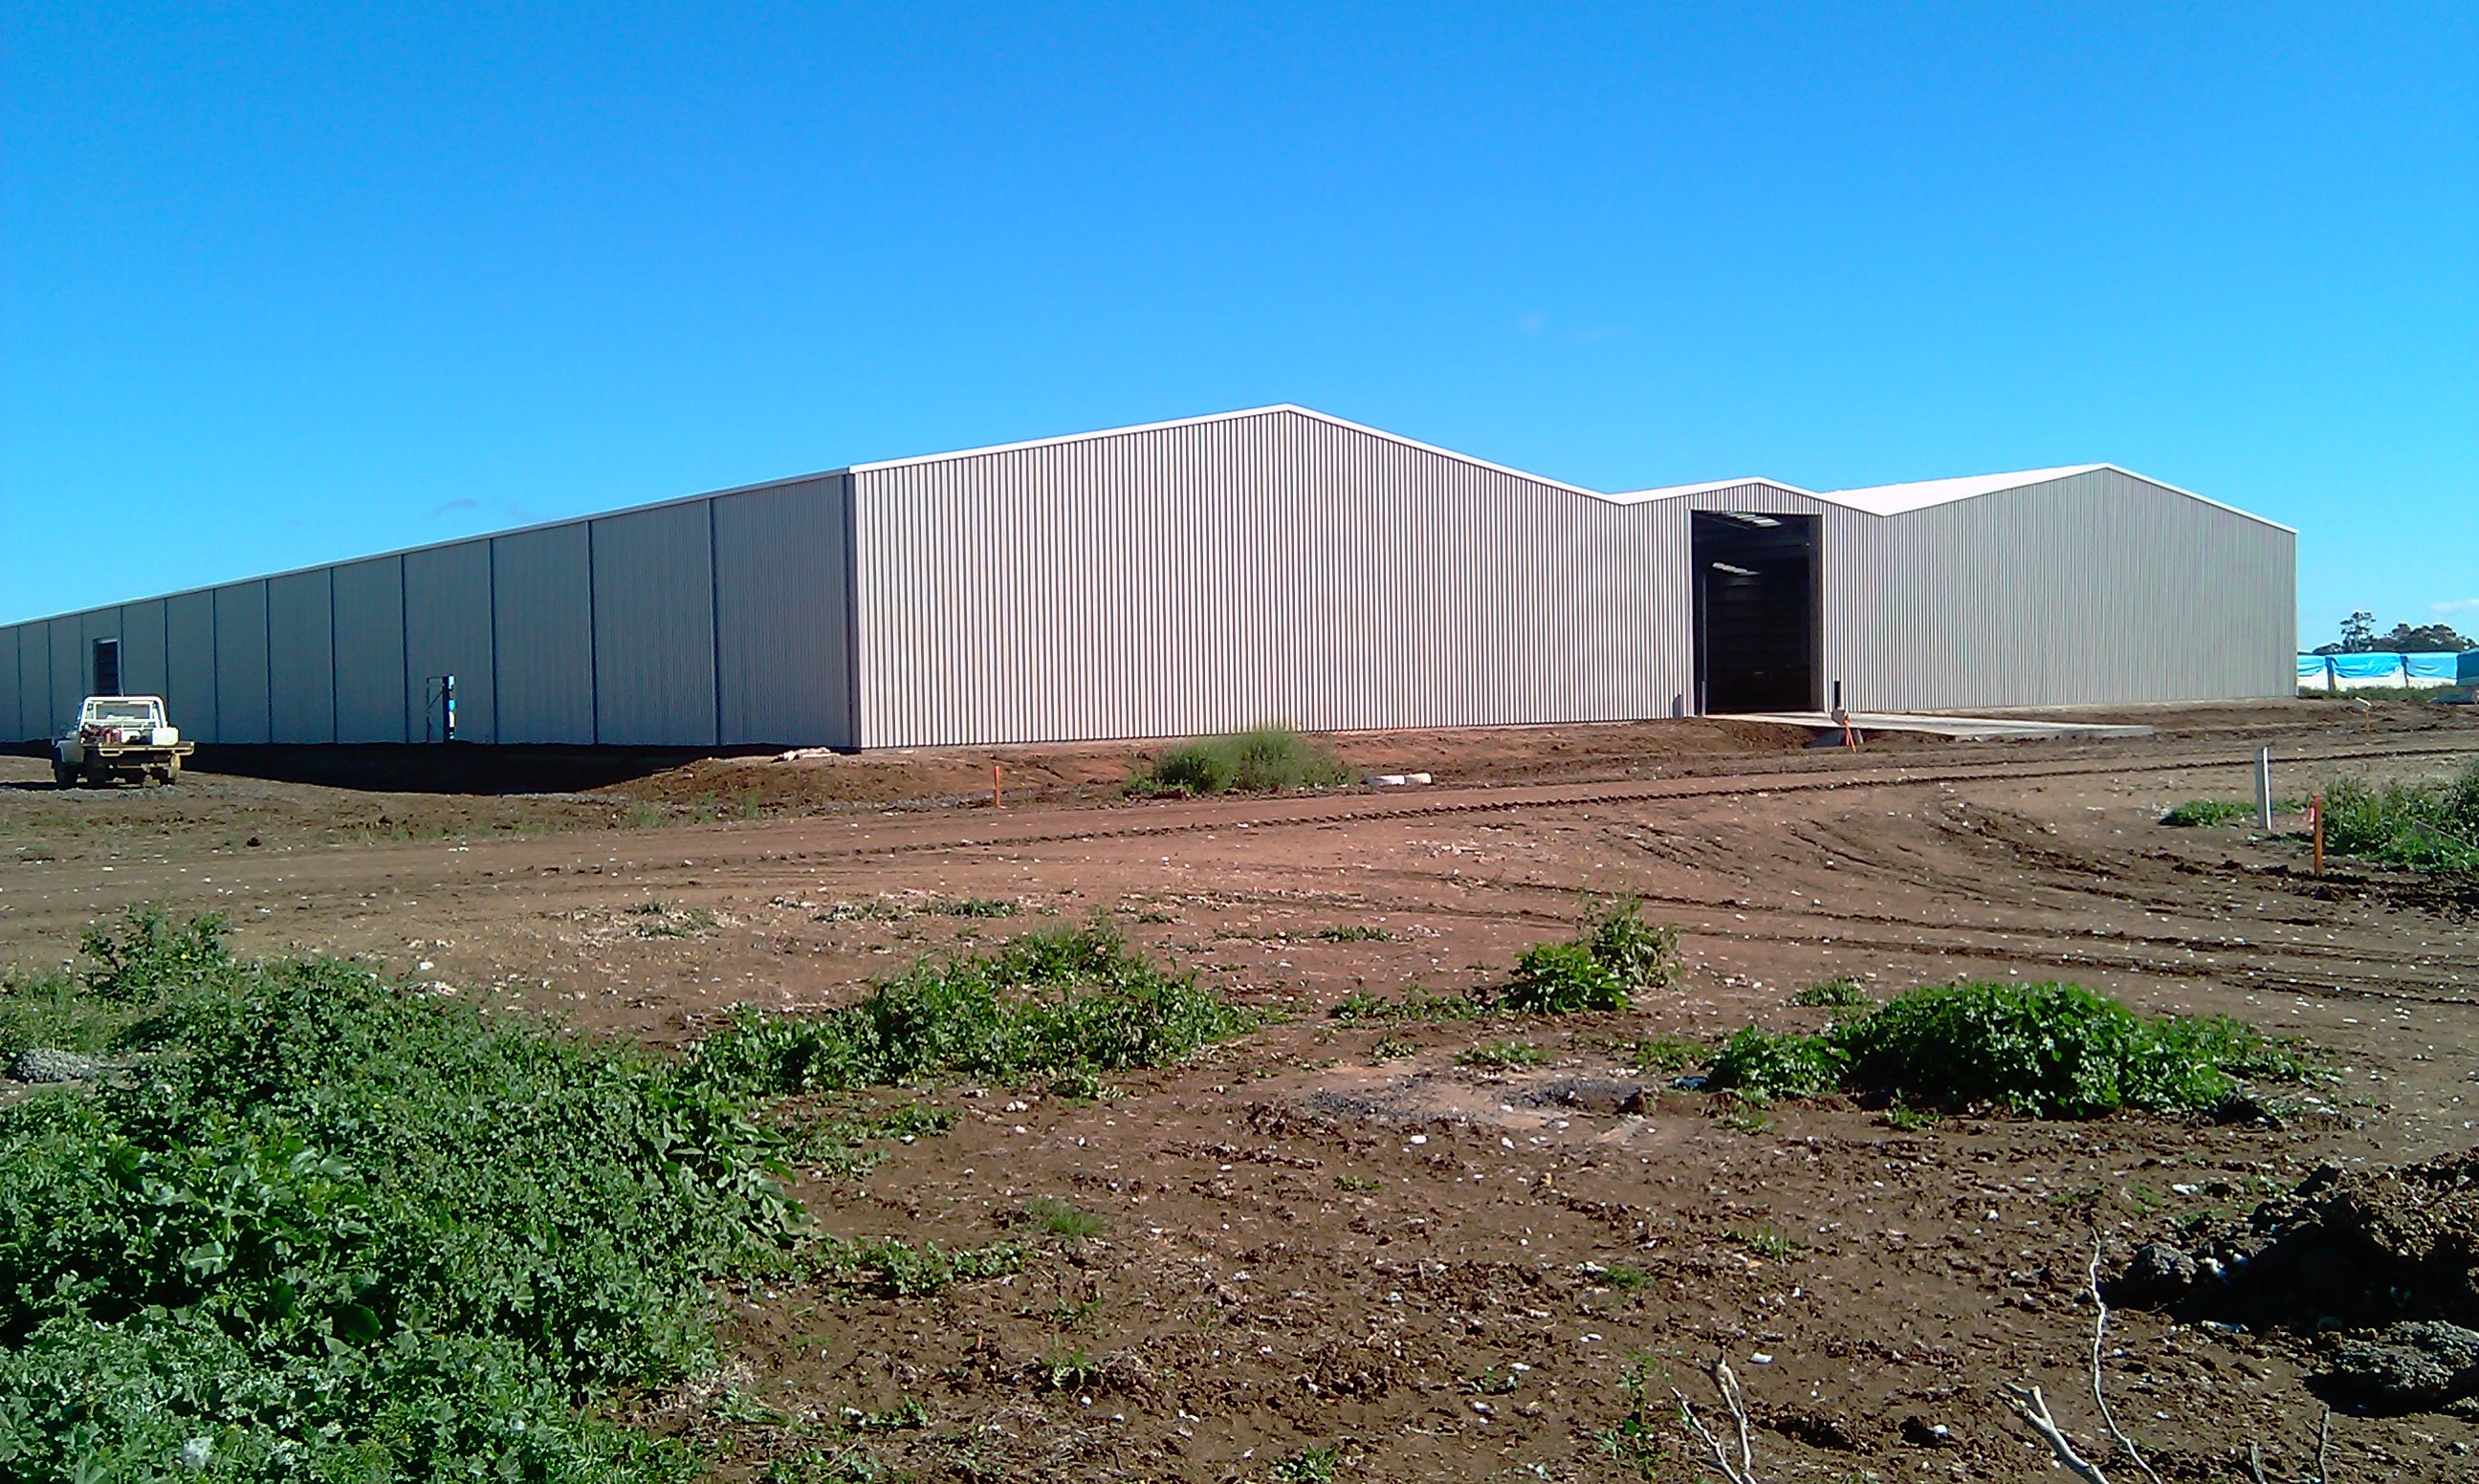 Cotton Storage Facility